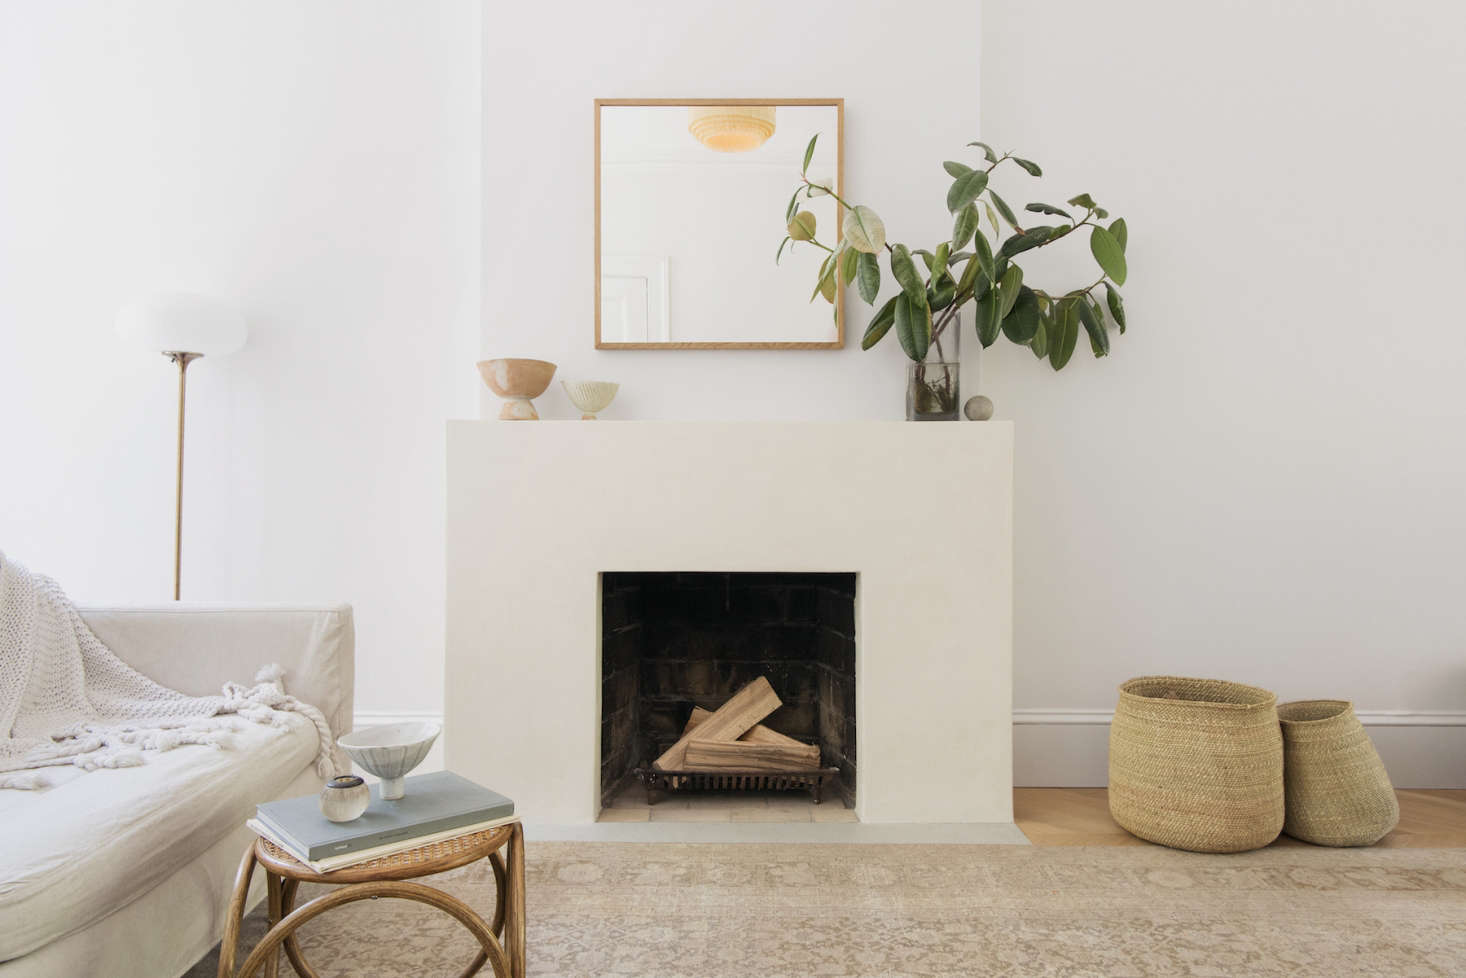 Architect Elizabeth Roberts opted to coat the living room fireplace surround in tadelakt for added texture. Photograph by Dustin Aksland, courtesy of Elizabeth Roberts, from A Warm, Minimalist Duplex in Brooklyn by Architect Elizabeth Roberts.